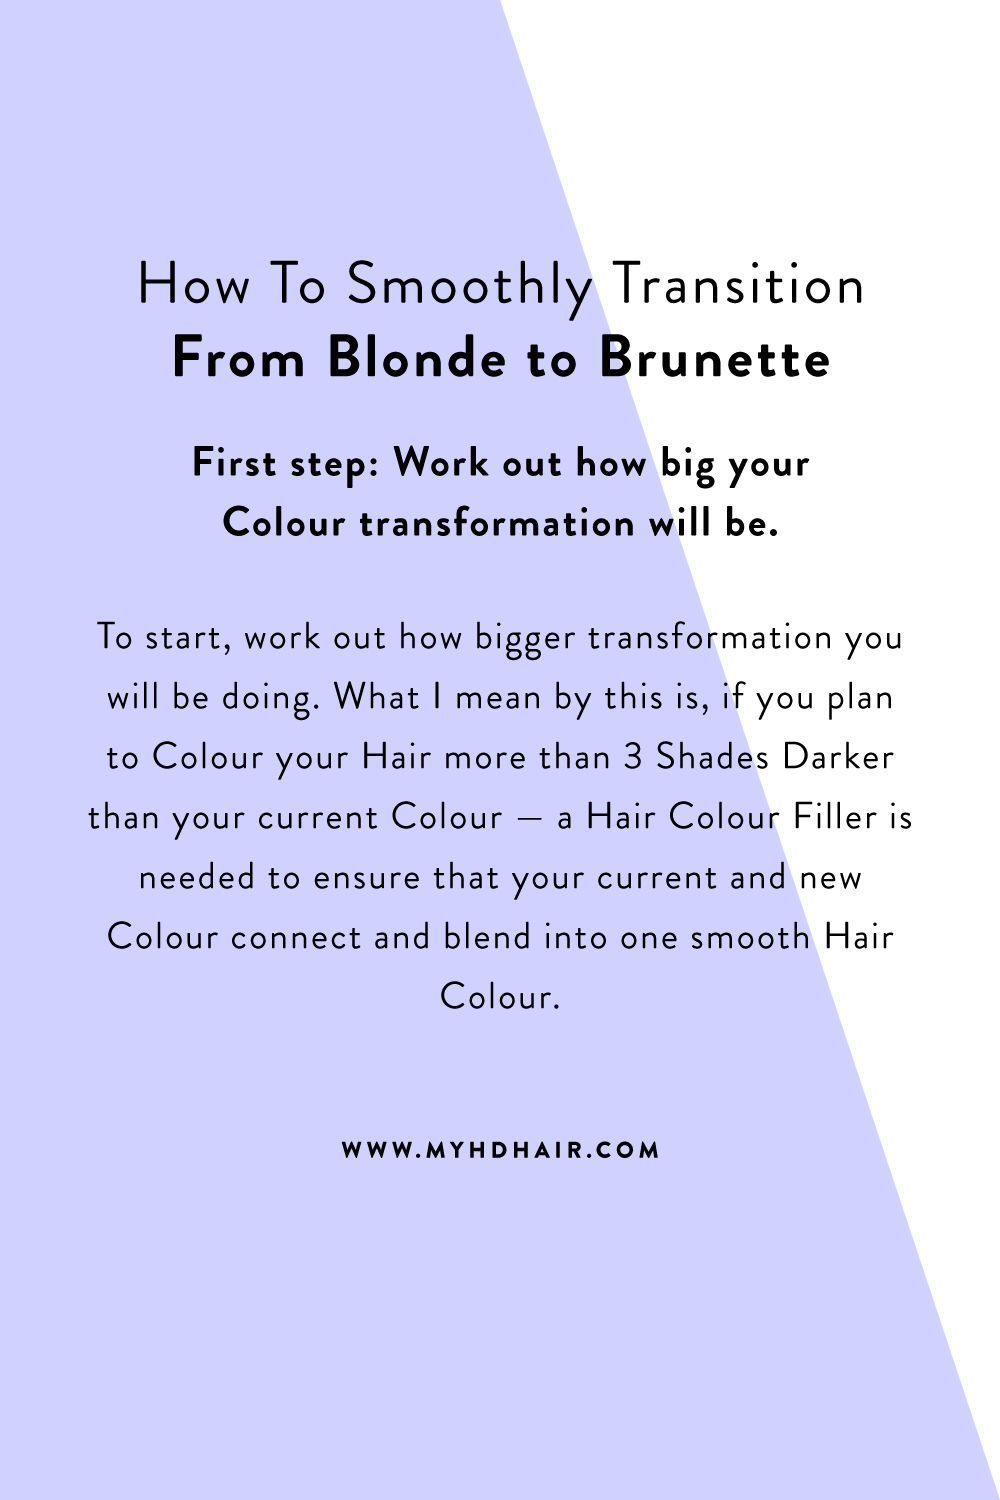 How To Smoothly Transition From Blonde to Brunette